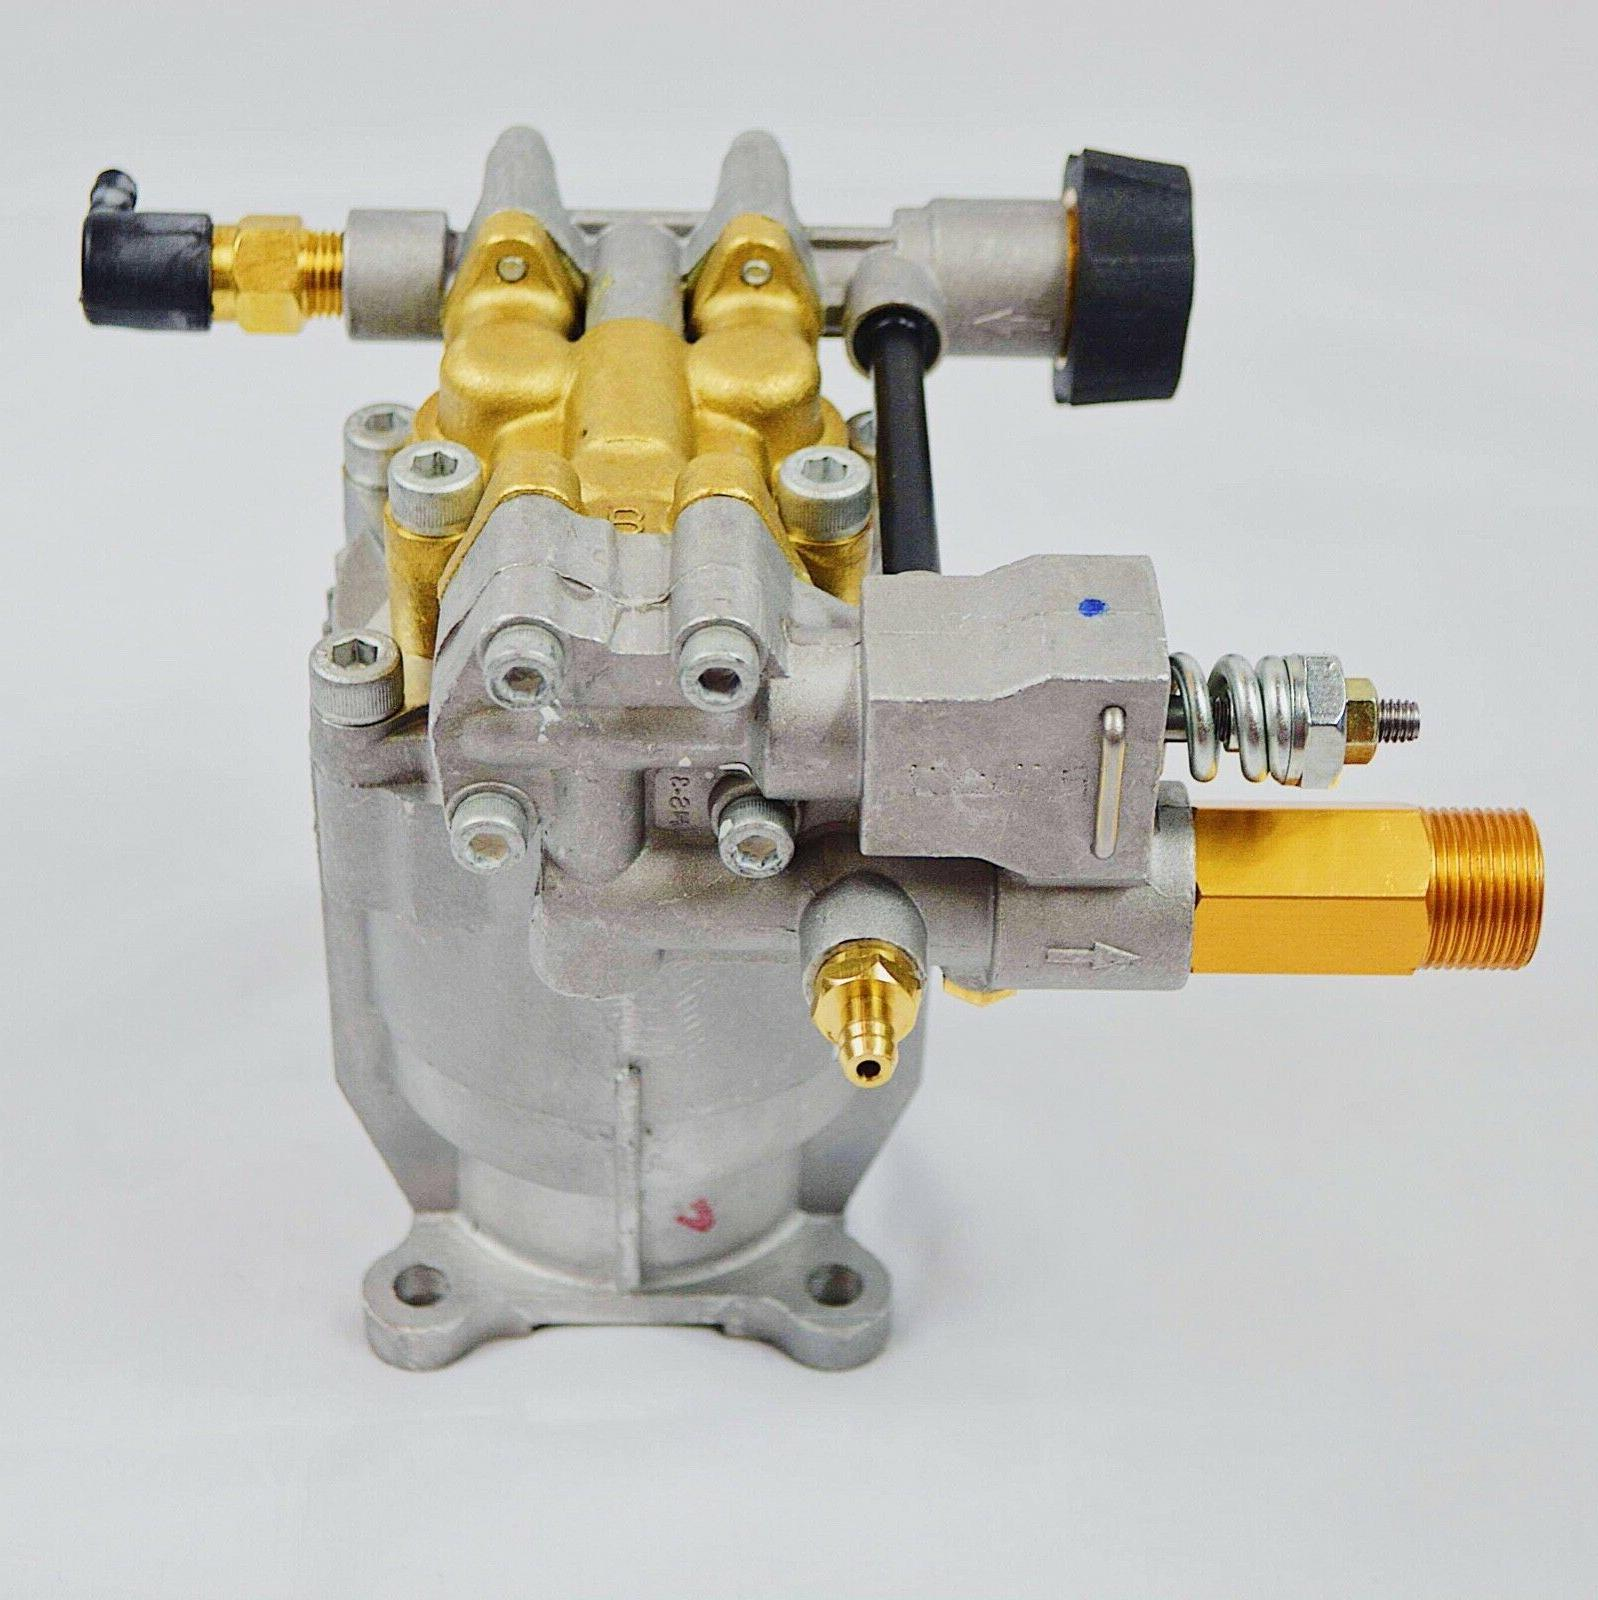 PSI 2.5 Washer Head Excell, Generac